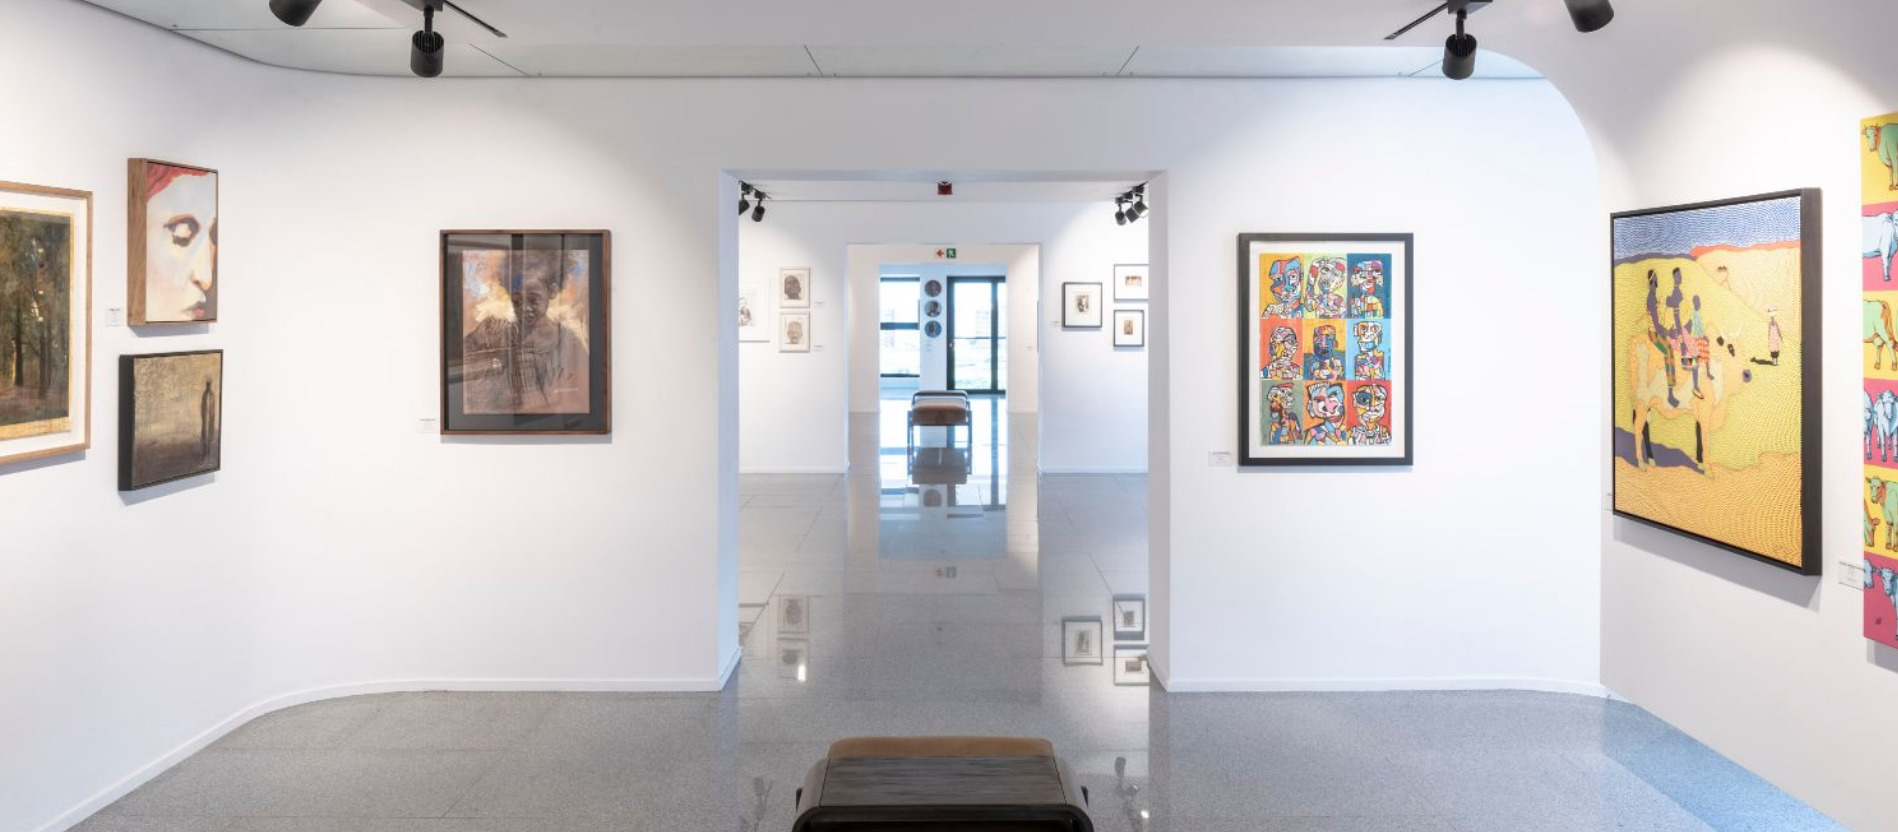 Jaffer Modern Welcomes Public With Community Of Portraits photo